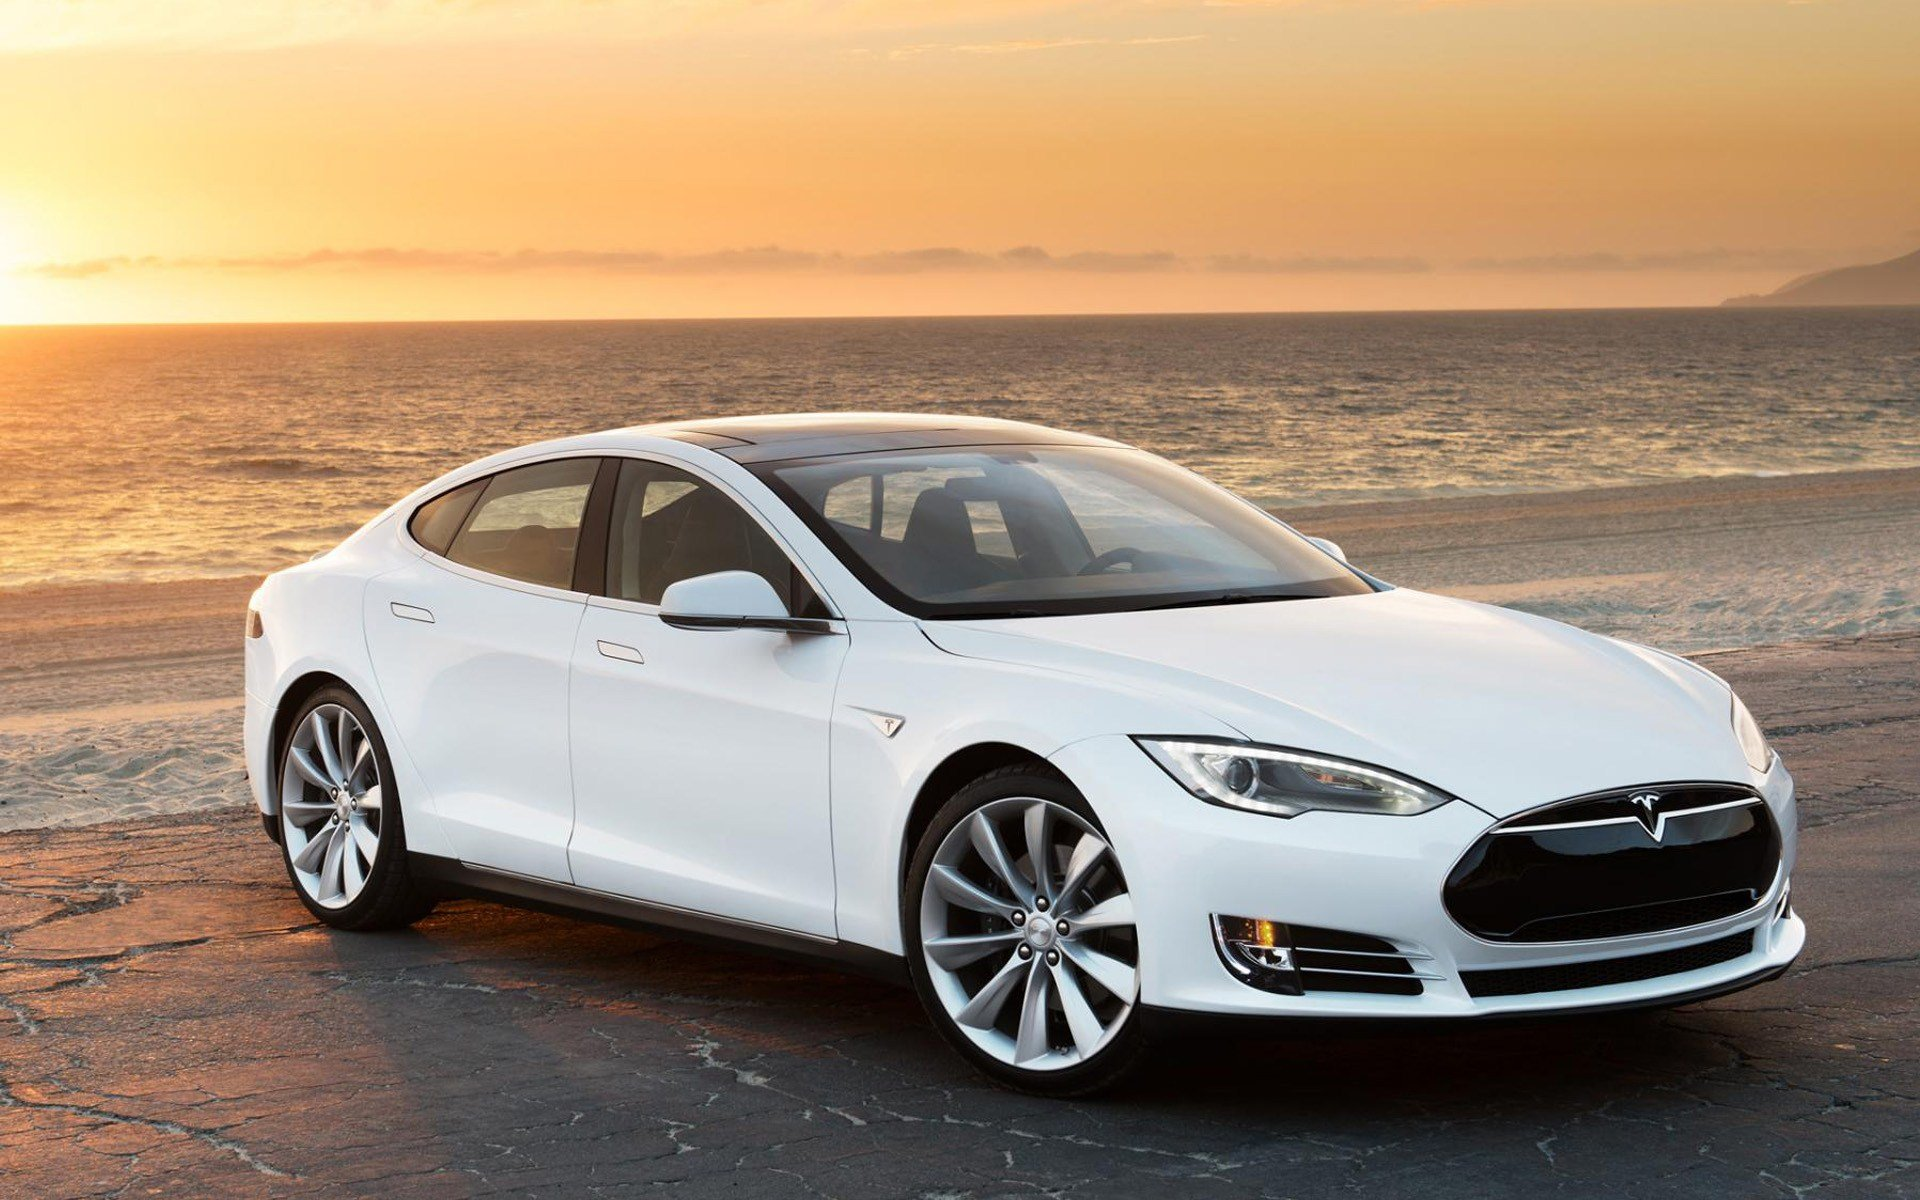 Download hd 1920x1200 Tesla Model S computer wallpaper ID:237667 for free